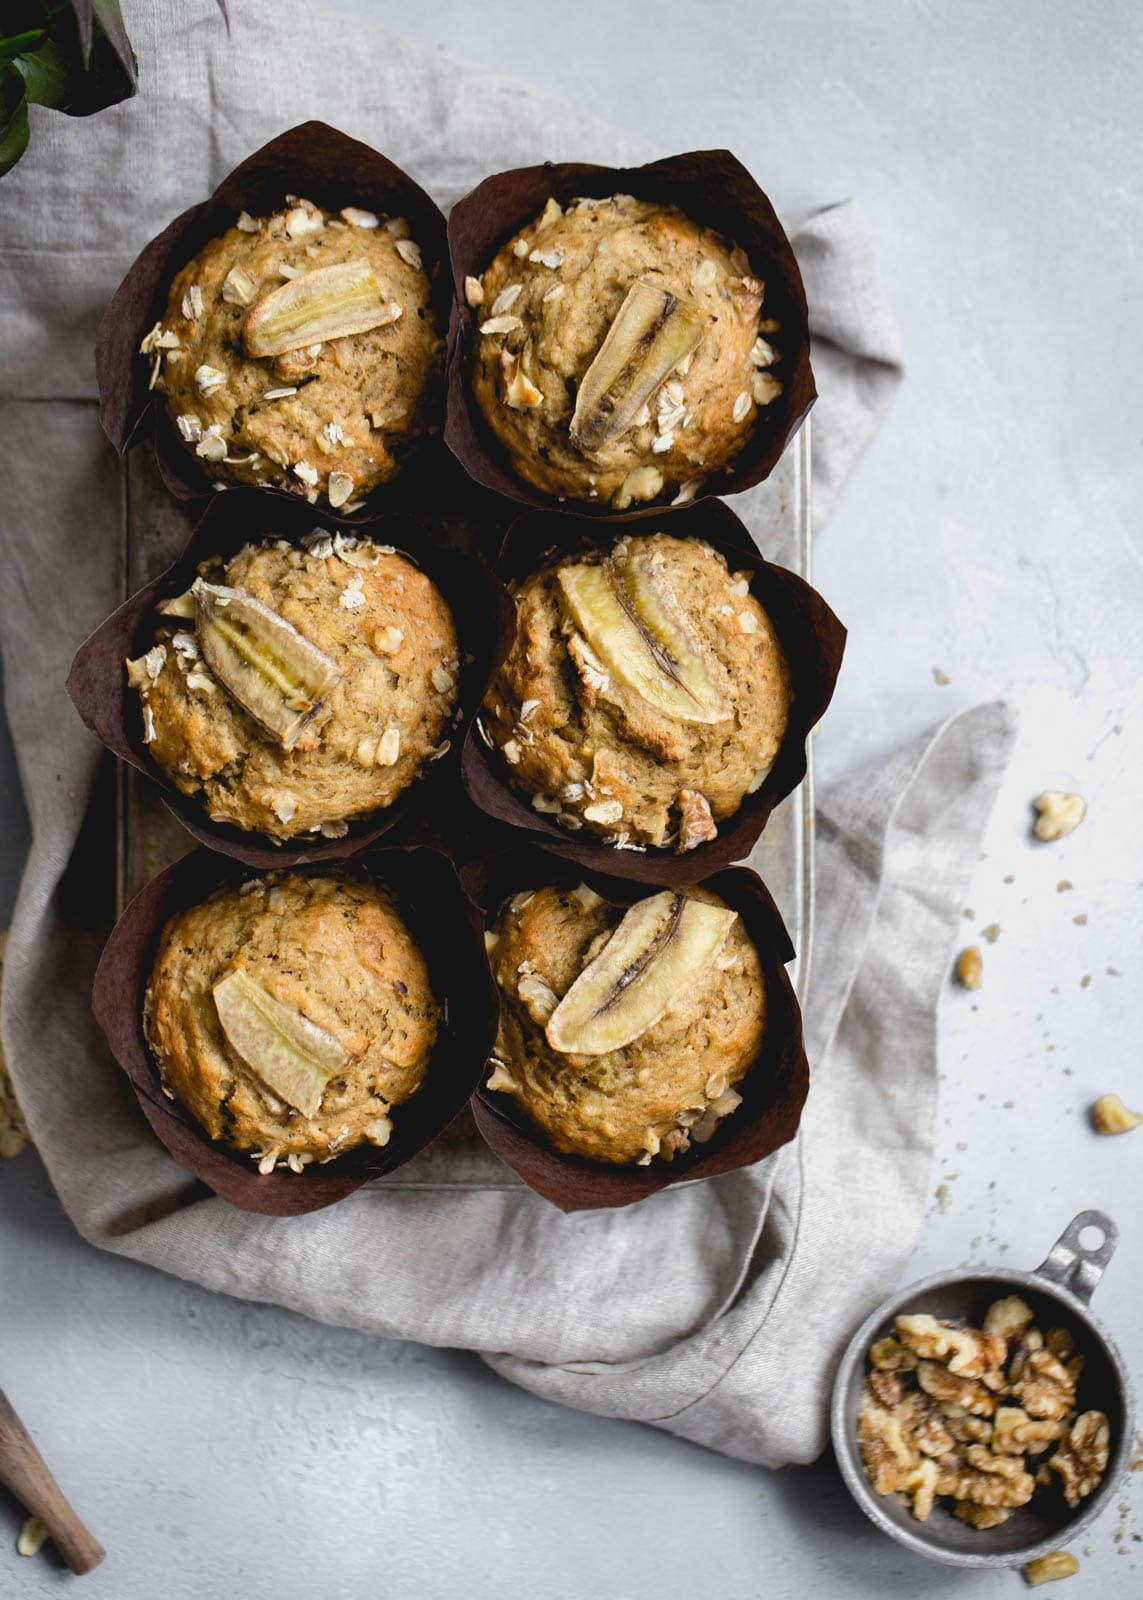 Magical Whole Wheat Banana Nut Muffins so moist and flavorful you won't even realize they're healthy!